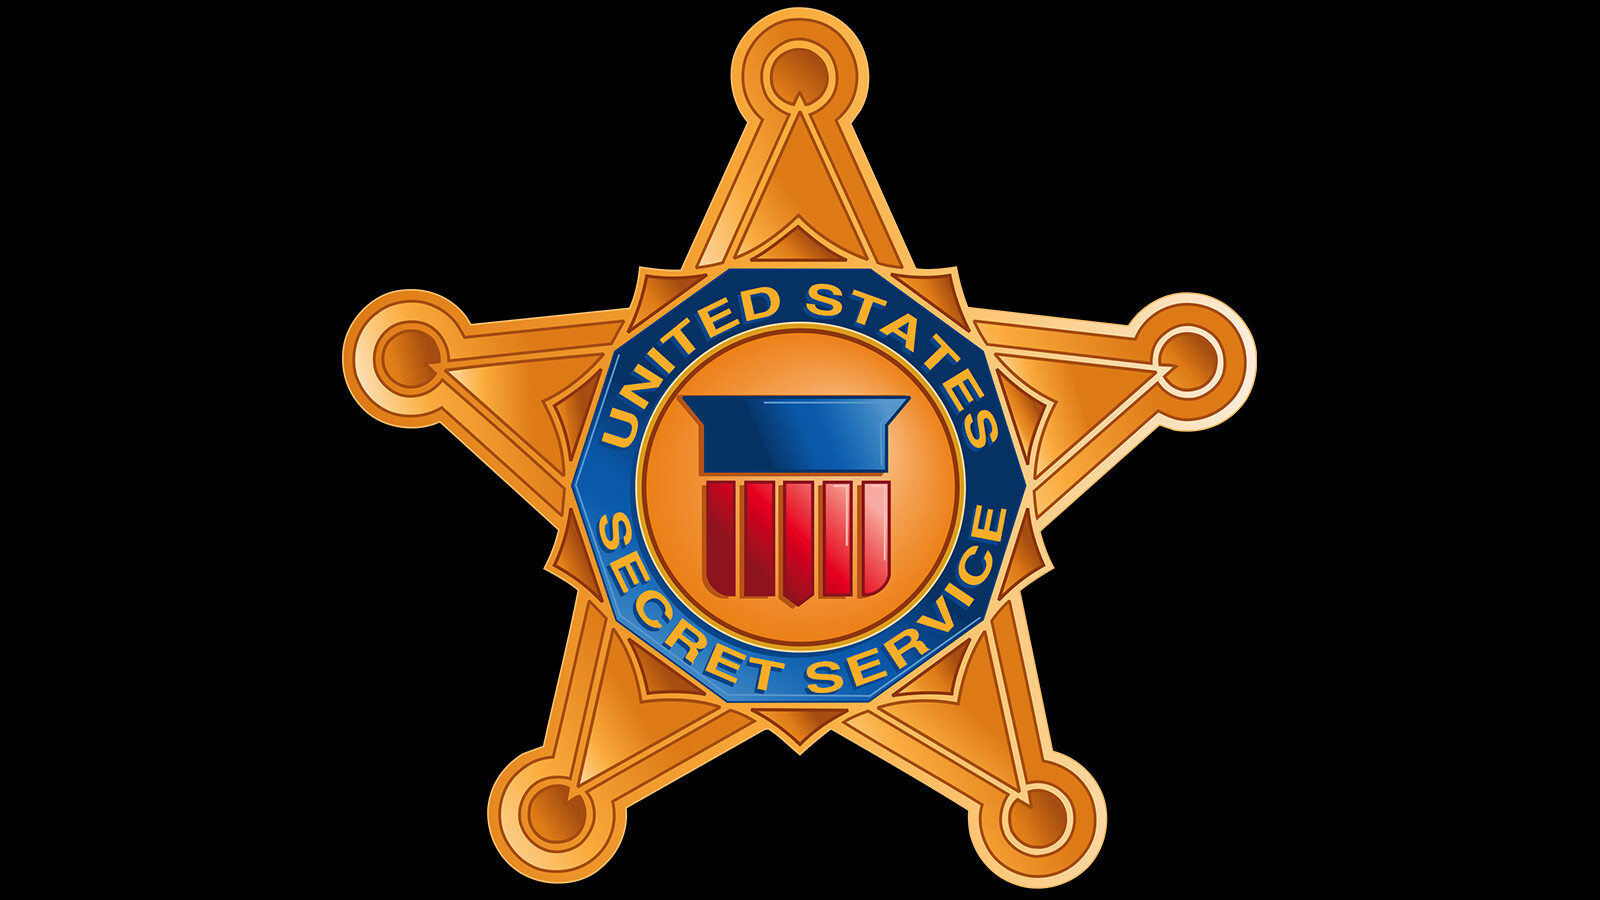 Secret Service intel briefings ahead of January 6 concluded there was no indication of civil disobedience